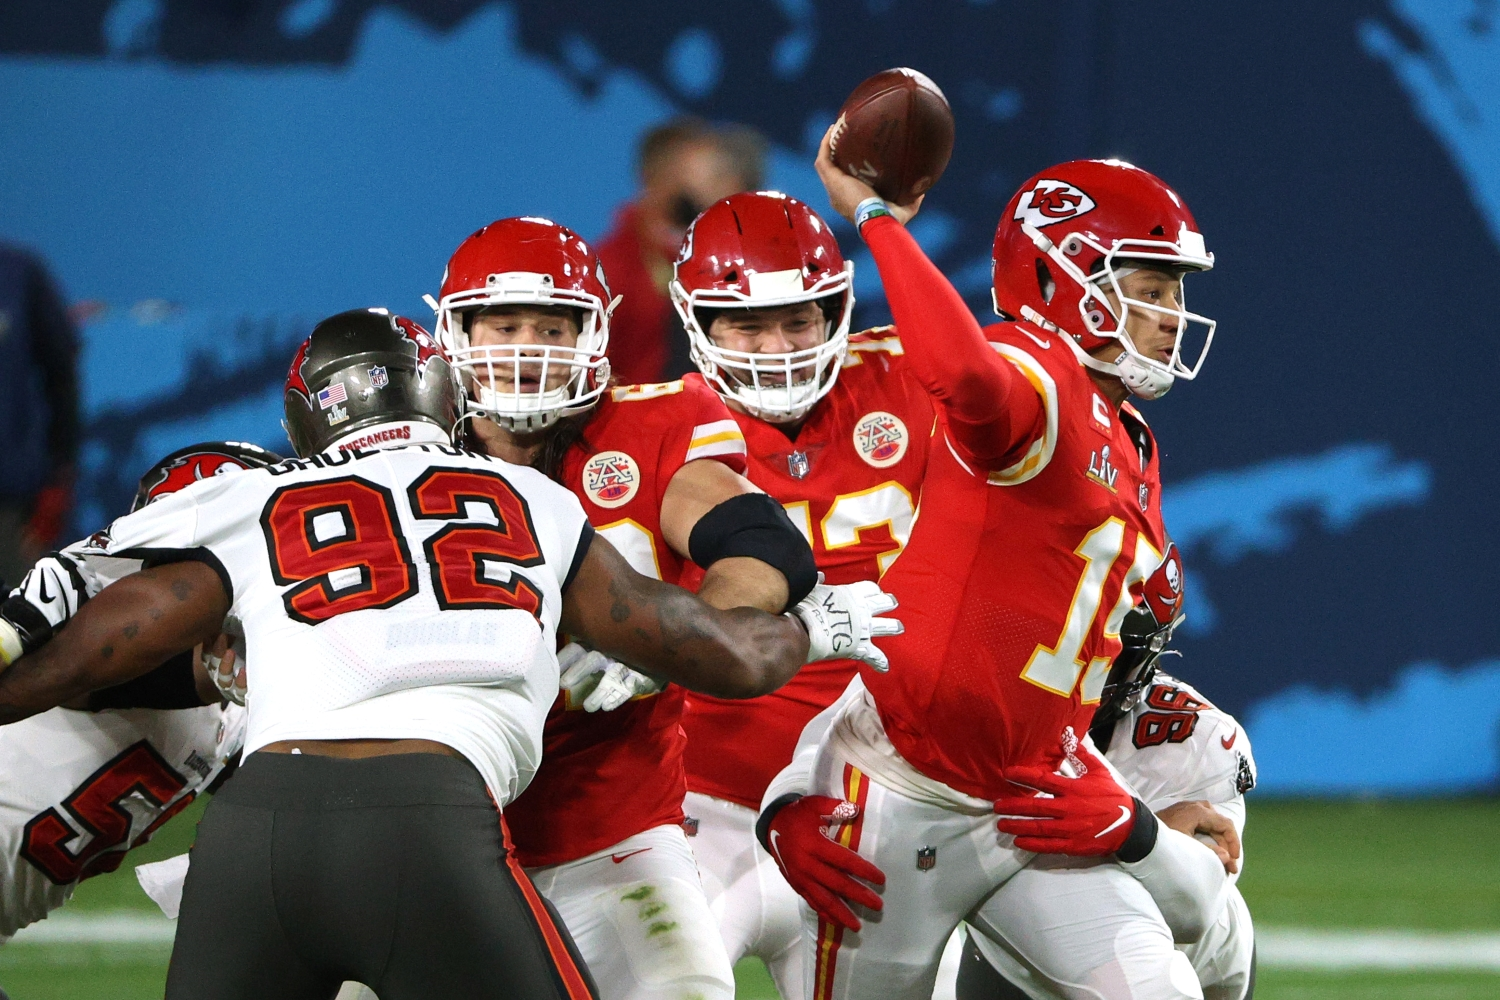 Patrick Mahomes' Painfully Unpleasant Offseason Just Got a Whole Lot Worse